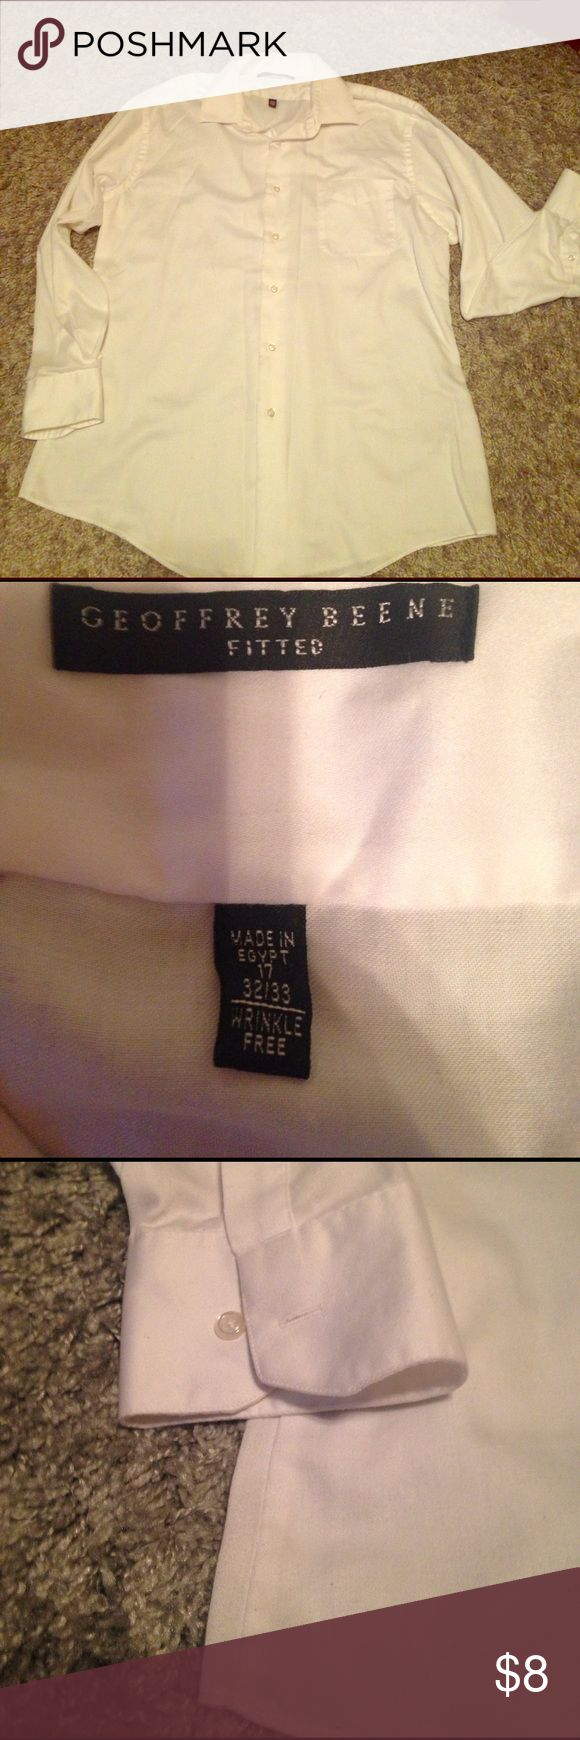 Men's Geoffrey Beene Dress Shirt EUC. Men's Geoffrey Beene dress shirt. Size 17, 32–33. It is a fitted dress shirt. Color is white. Check out my other listings for bundle deals! Geoffrey Beene Shirts Dress Shirts